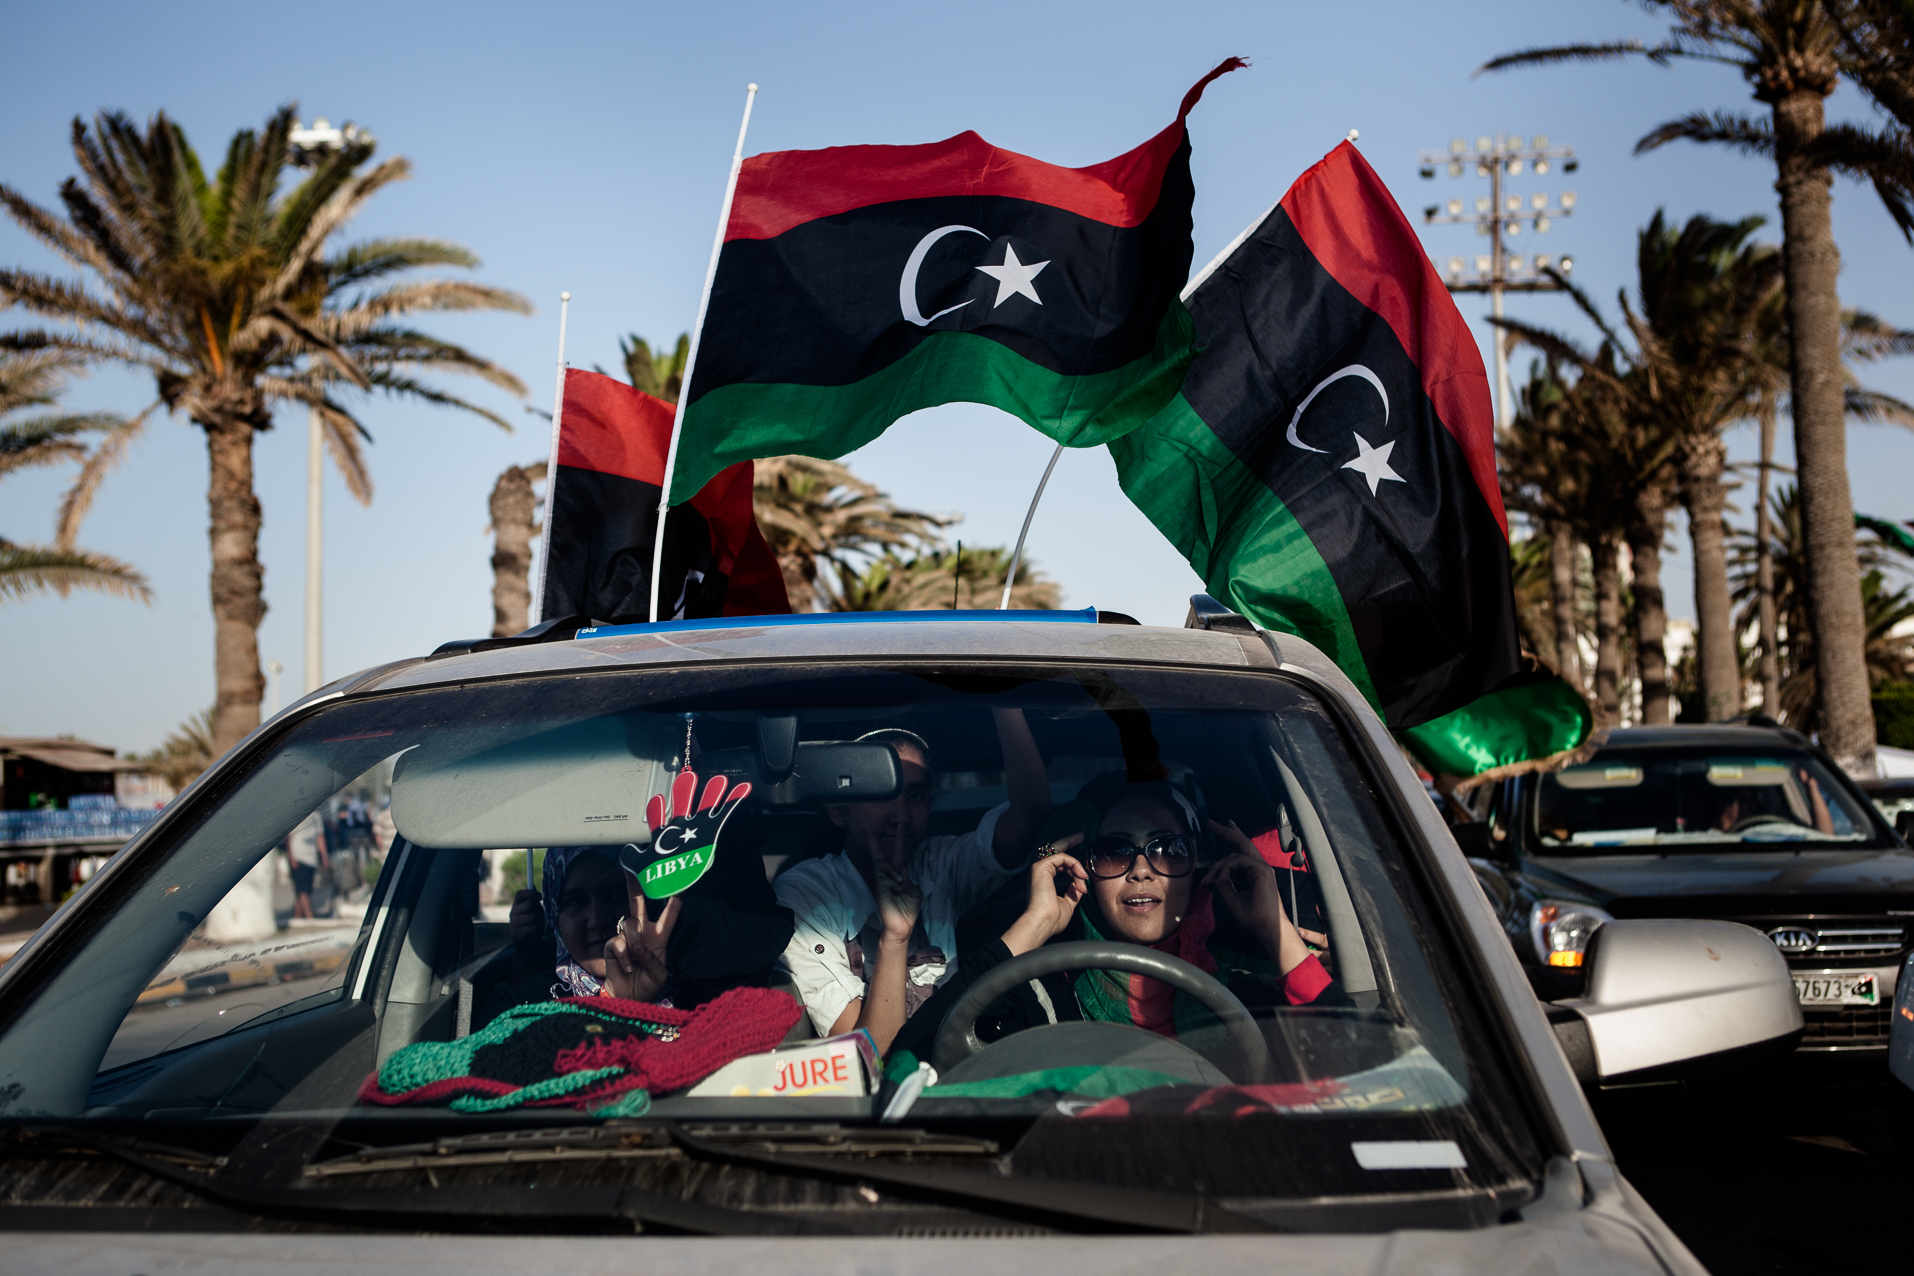 Tripoli, 7 juillet 2012, célébrations sur a place verte de Tripoli, pour les élections législatives.  Tripoli, July 7, 2012, celebrations in Green Square in Tripoli for the first elections.